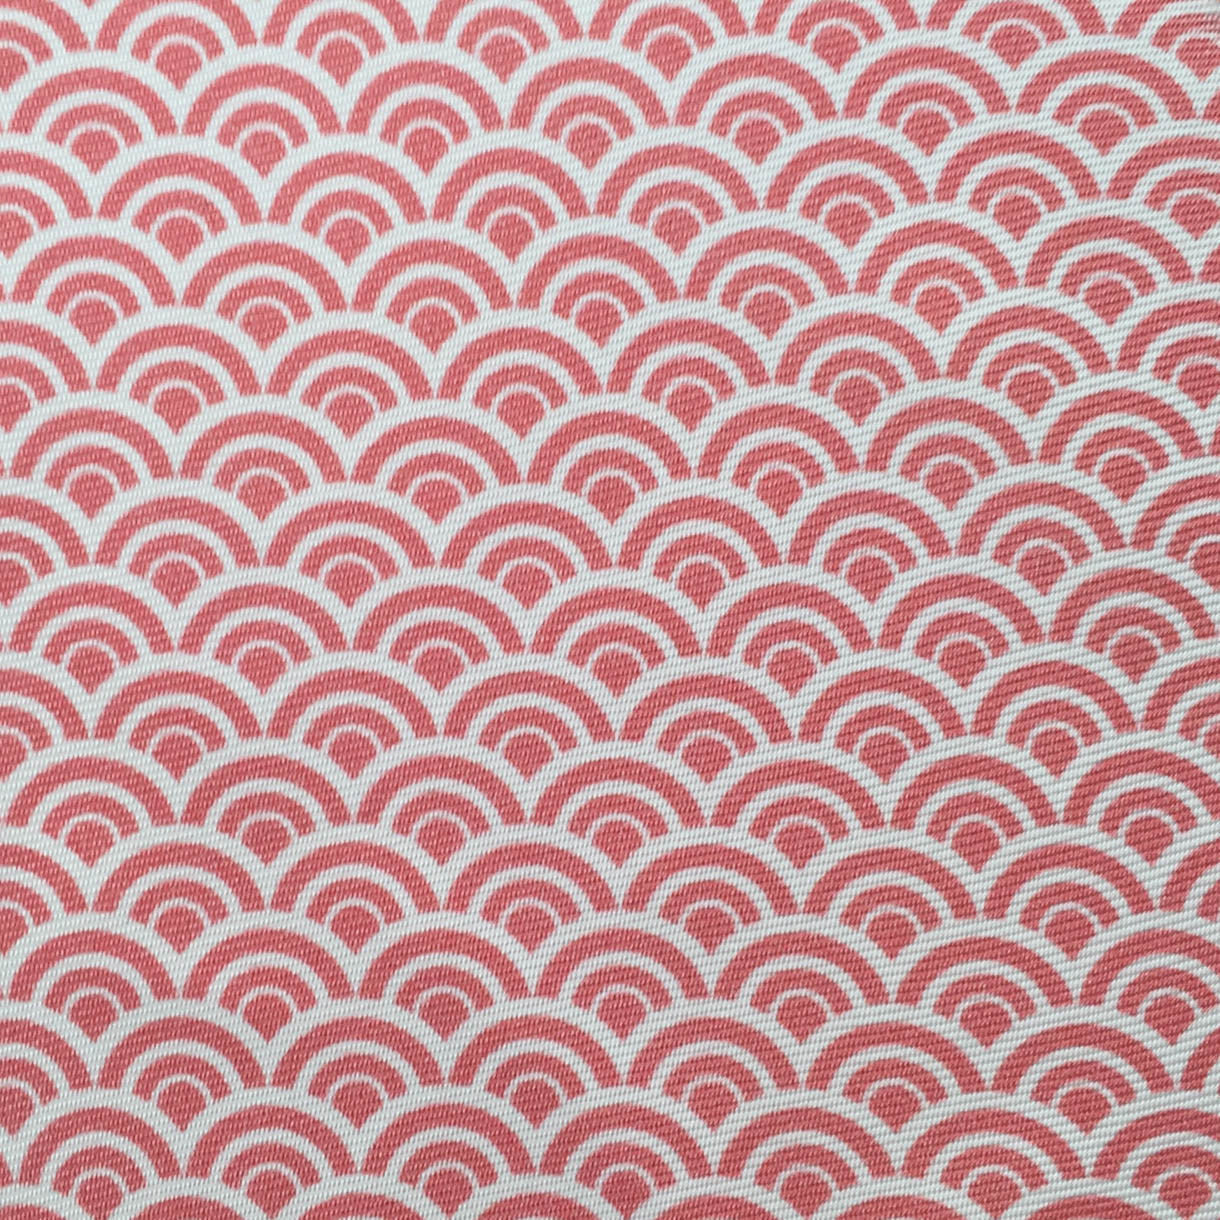 Repeating Half Circle Red